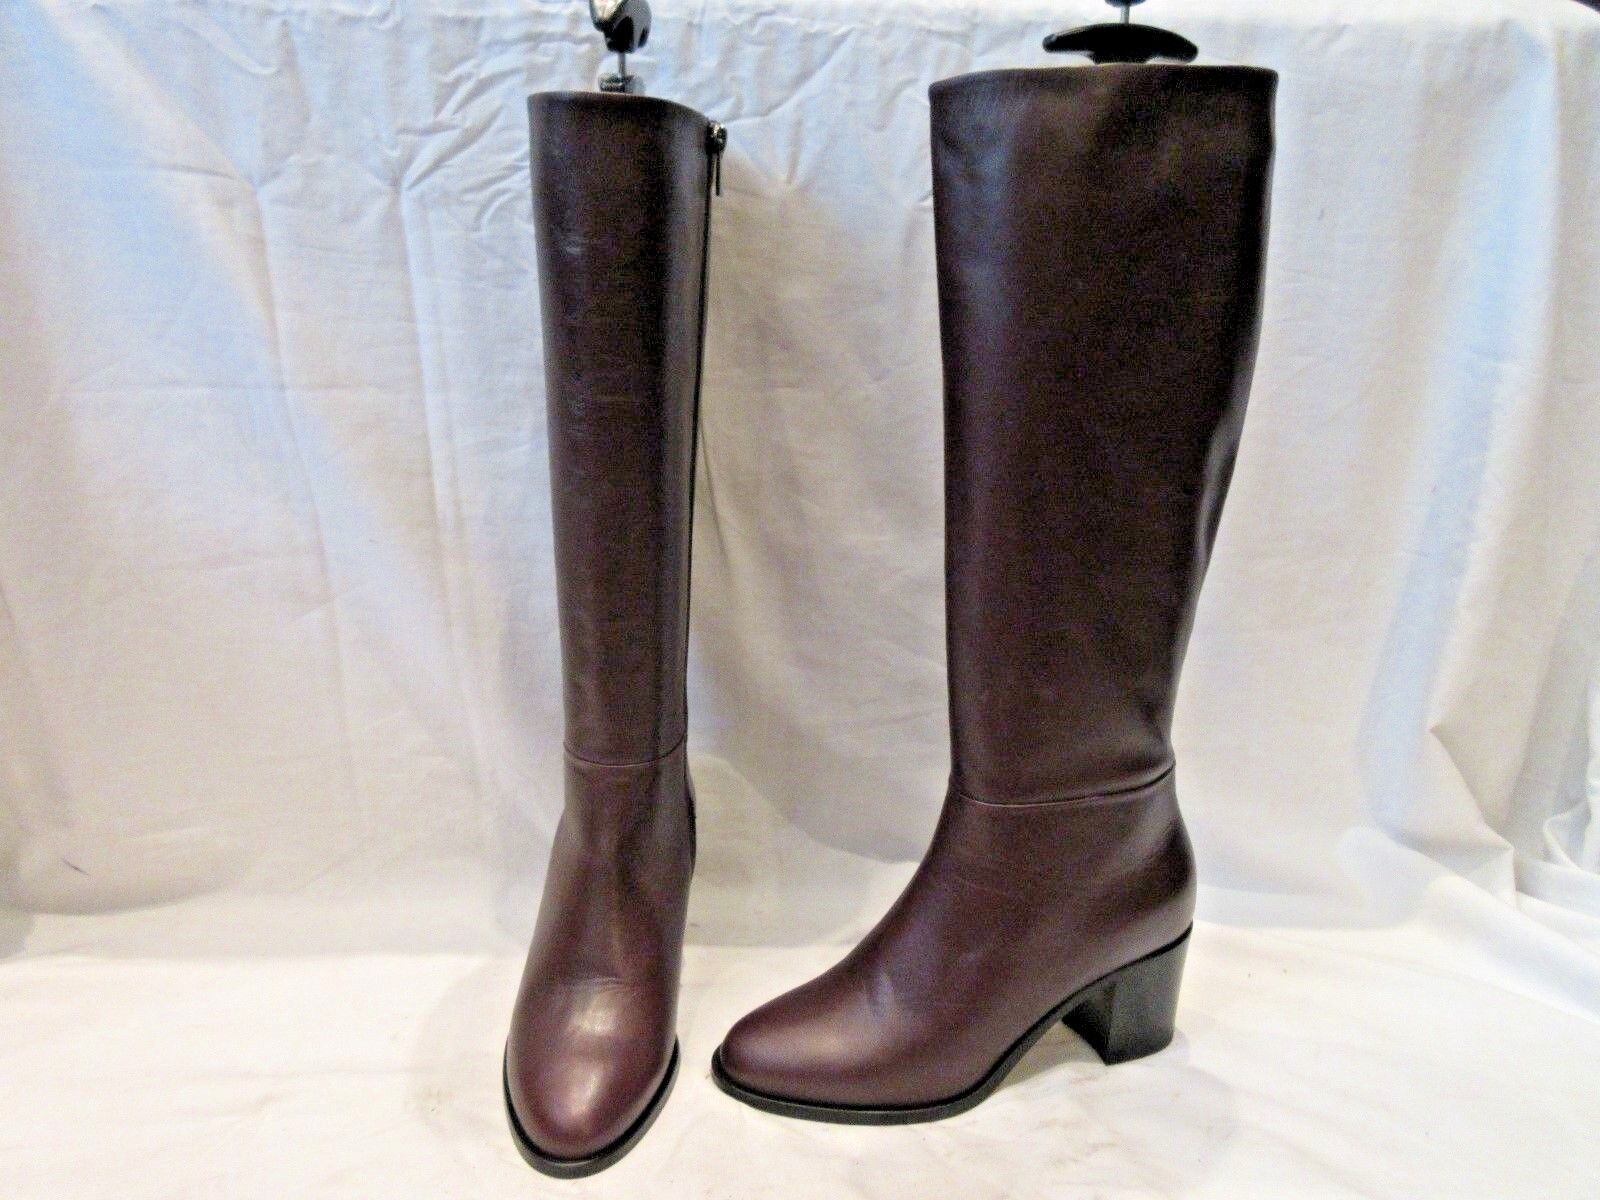 BN HOBBS LONDON BURGUNDY BROWN LEATHER ZIP UP BOOTS US 5 (1493)